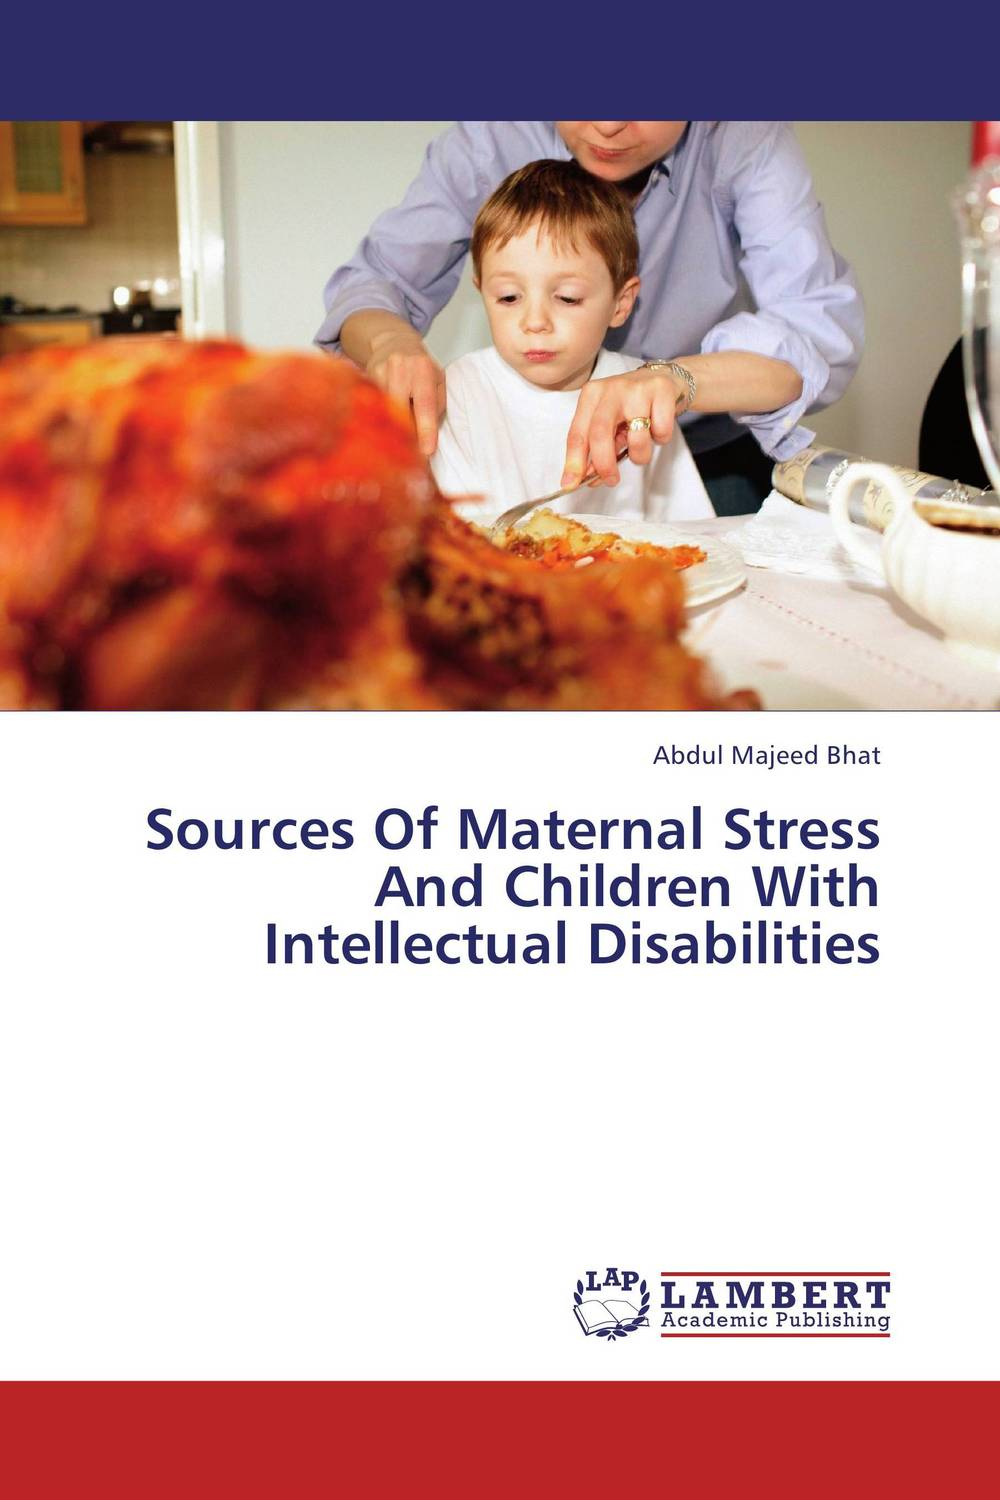 Sources Of Maternal Stress And Children With Intellectual Disabilities катушка для спиннинга agriculture fisheries and magic with disabilities 13